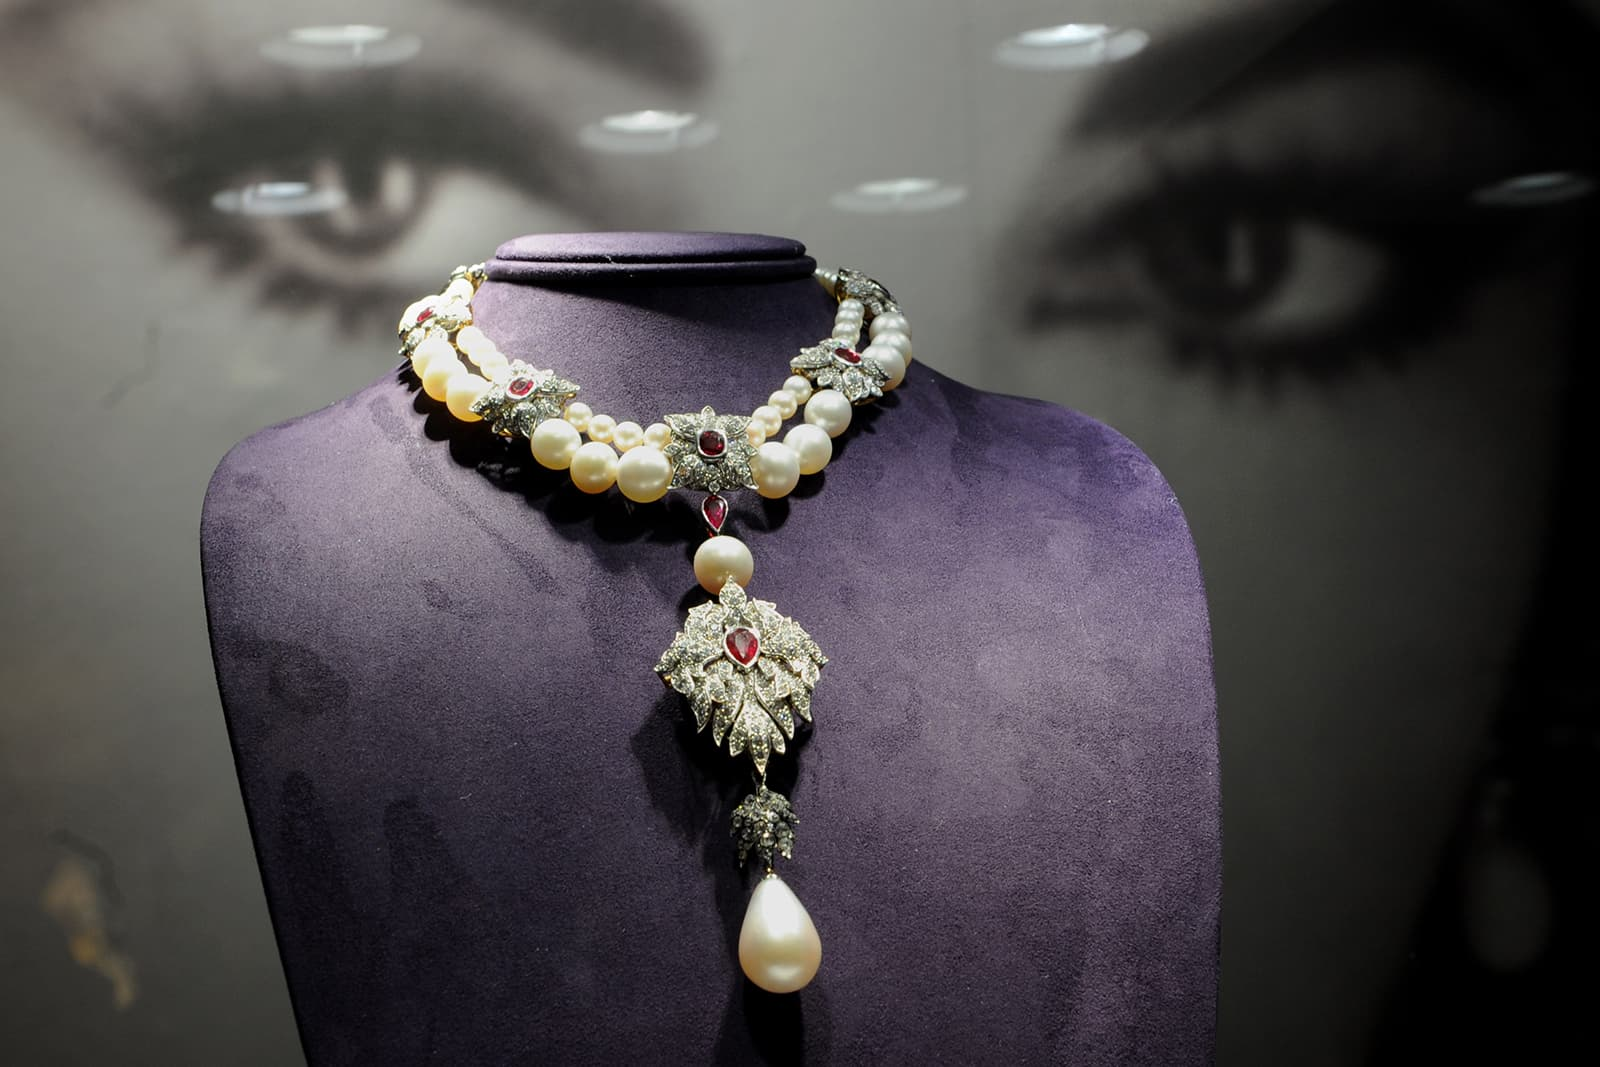 Elizabeth Taylor's La Peregrina Pearl necklace by Cartier with 55.95ct pear shaped pearl, accenting pearls, diamonds, and rubies